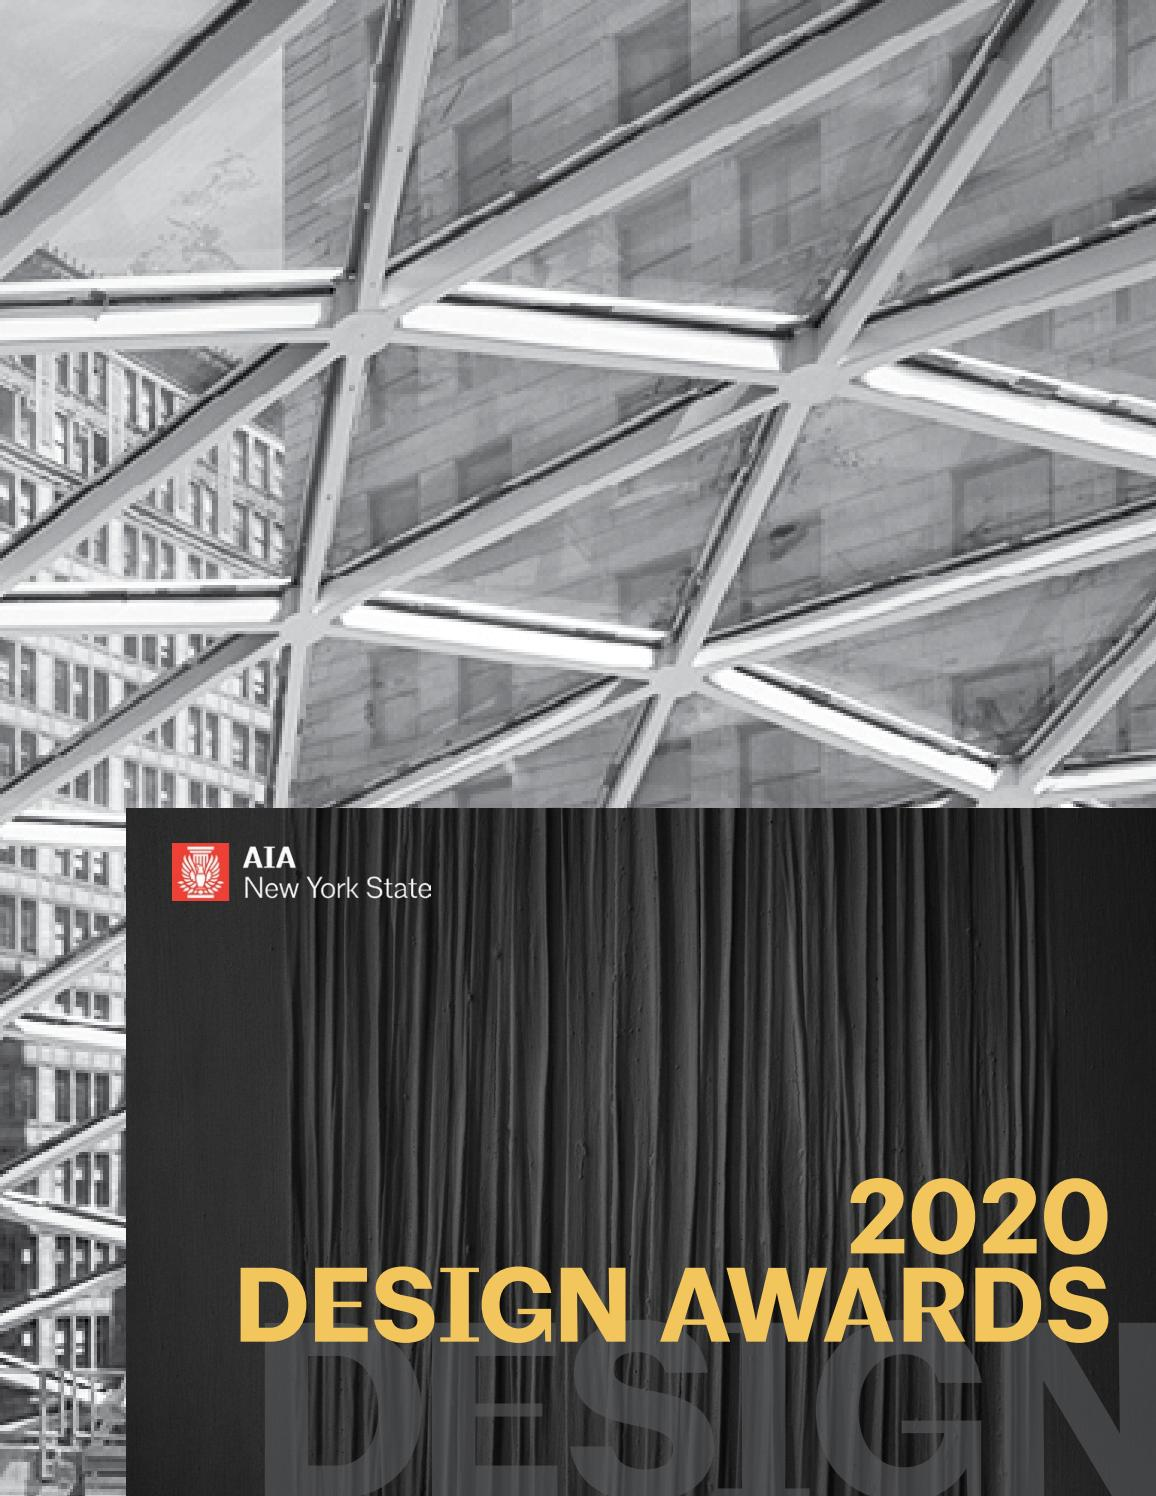 AIA New York State 2020 Design Awards by American Institute of Architects  New York State - issuu